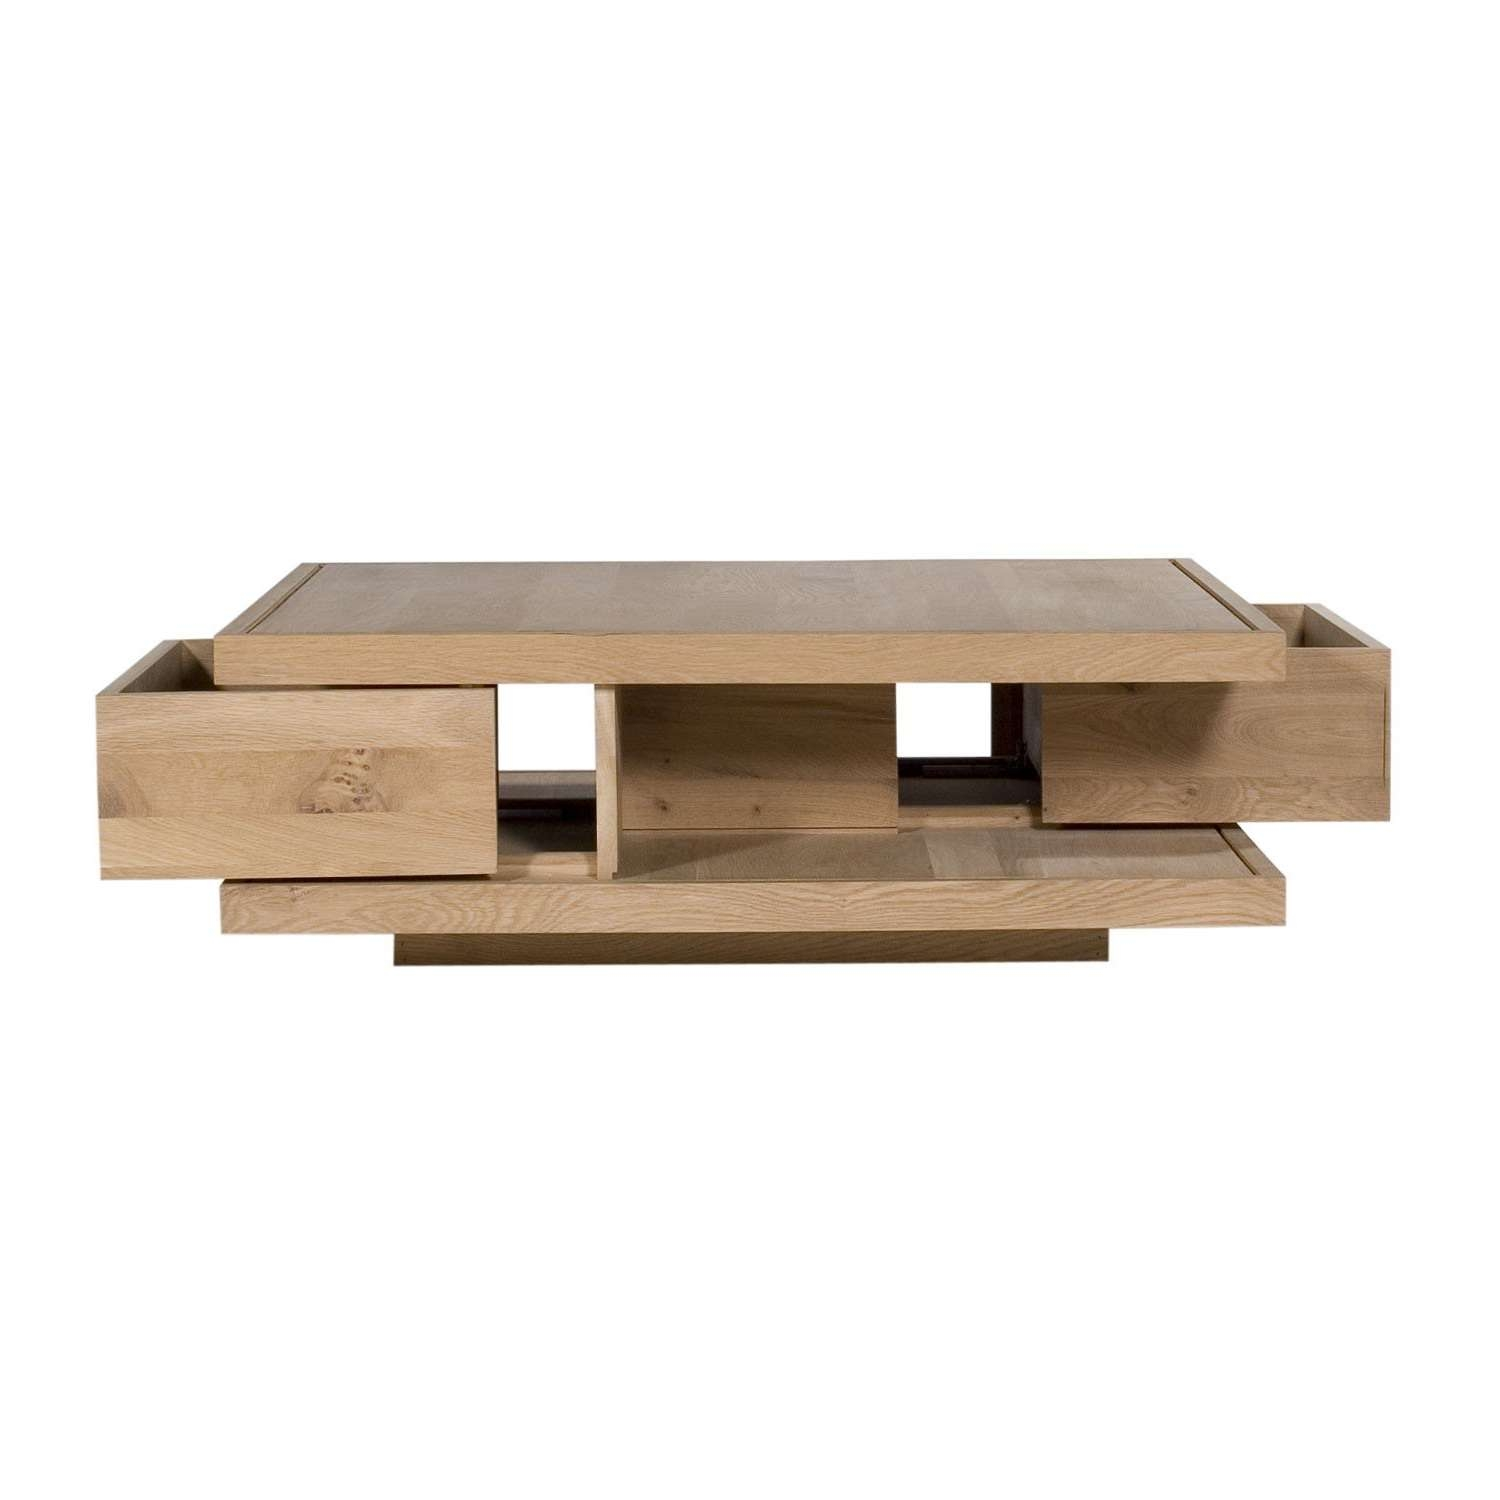 Preferred Contemporary Oak Coffee Table Pertaining To Ethnicraft Flat Oak Coffee Tables (View 9 of 20)